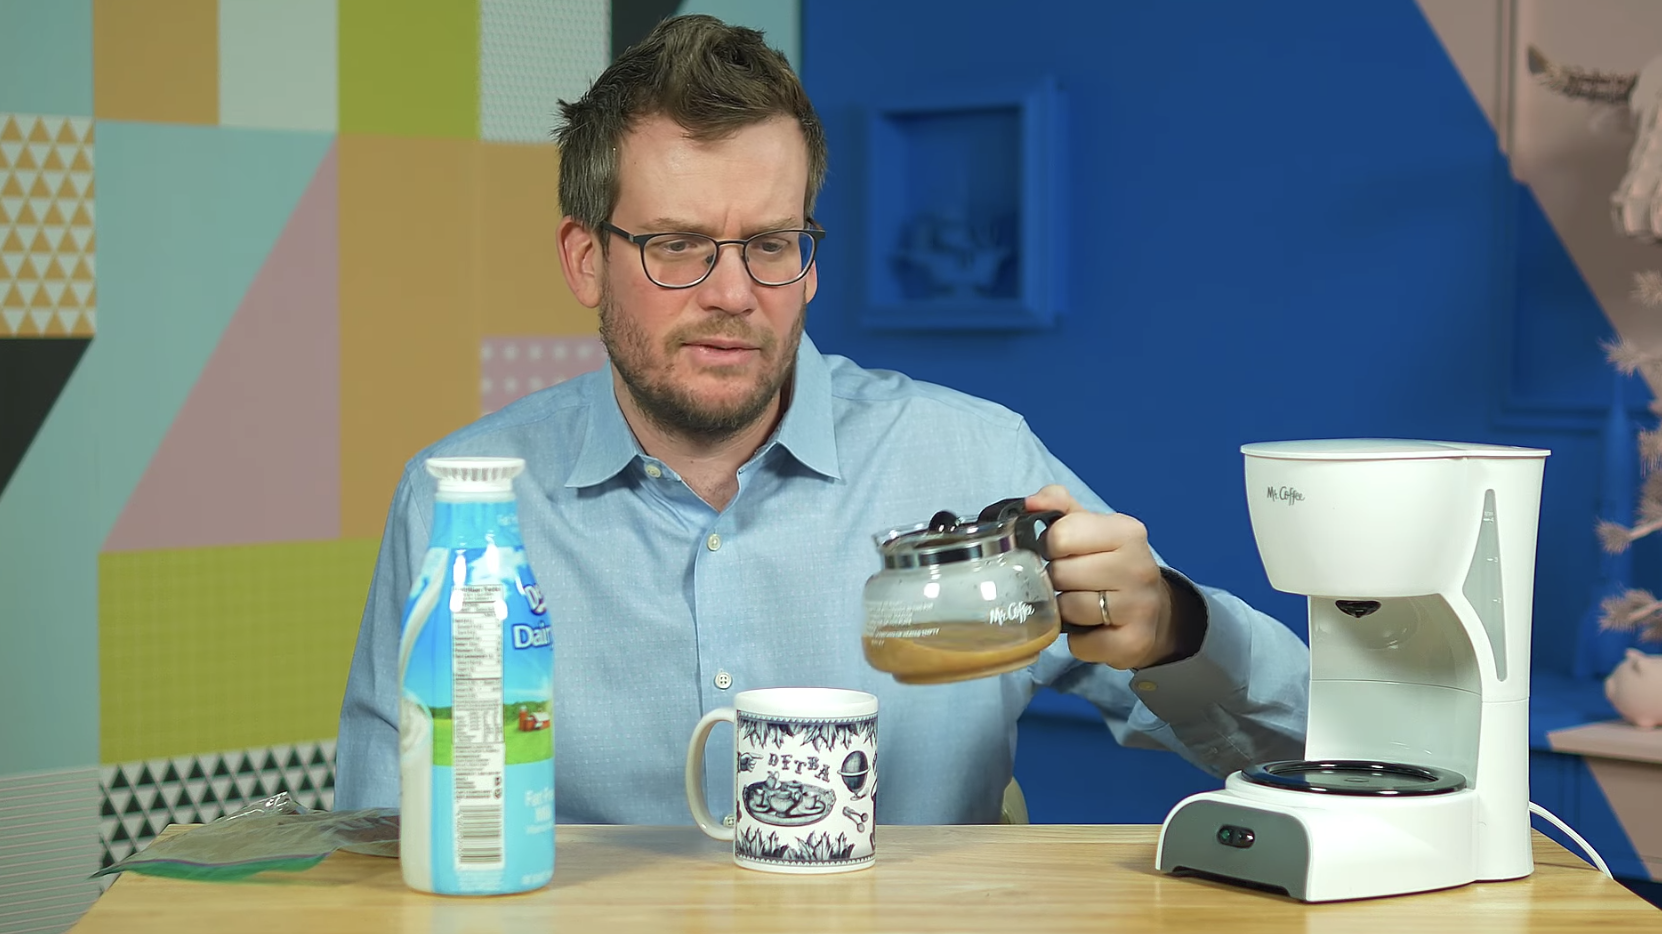 4 Coffee Hacks That Actually Work